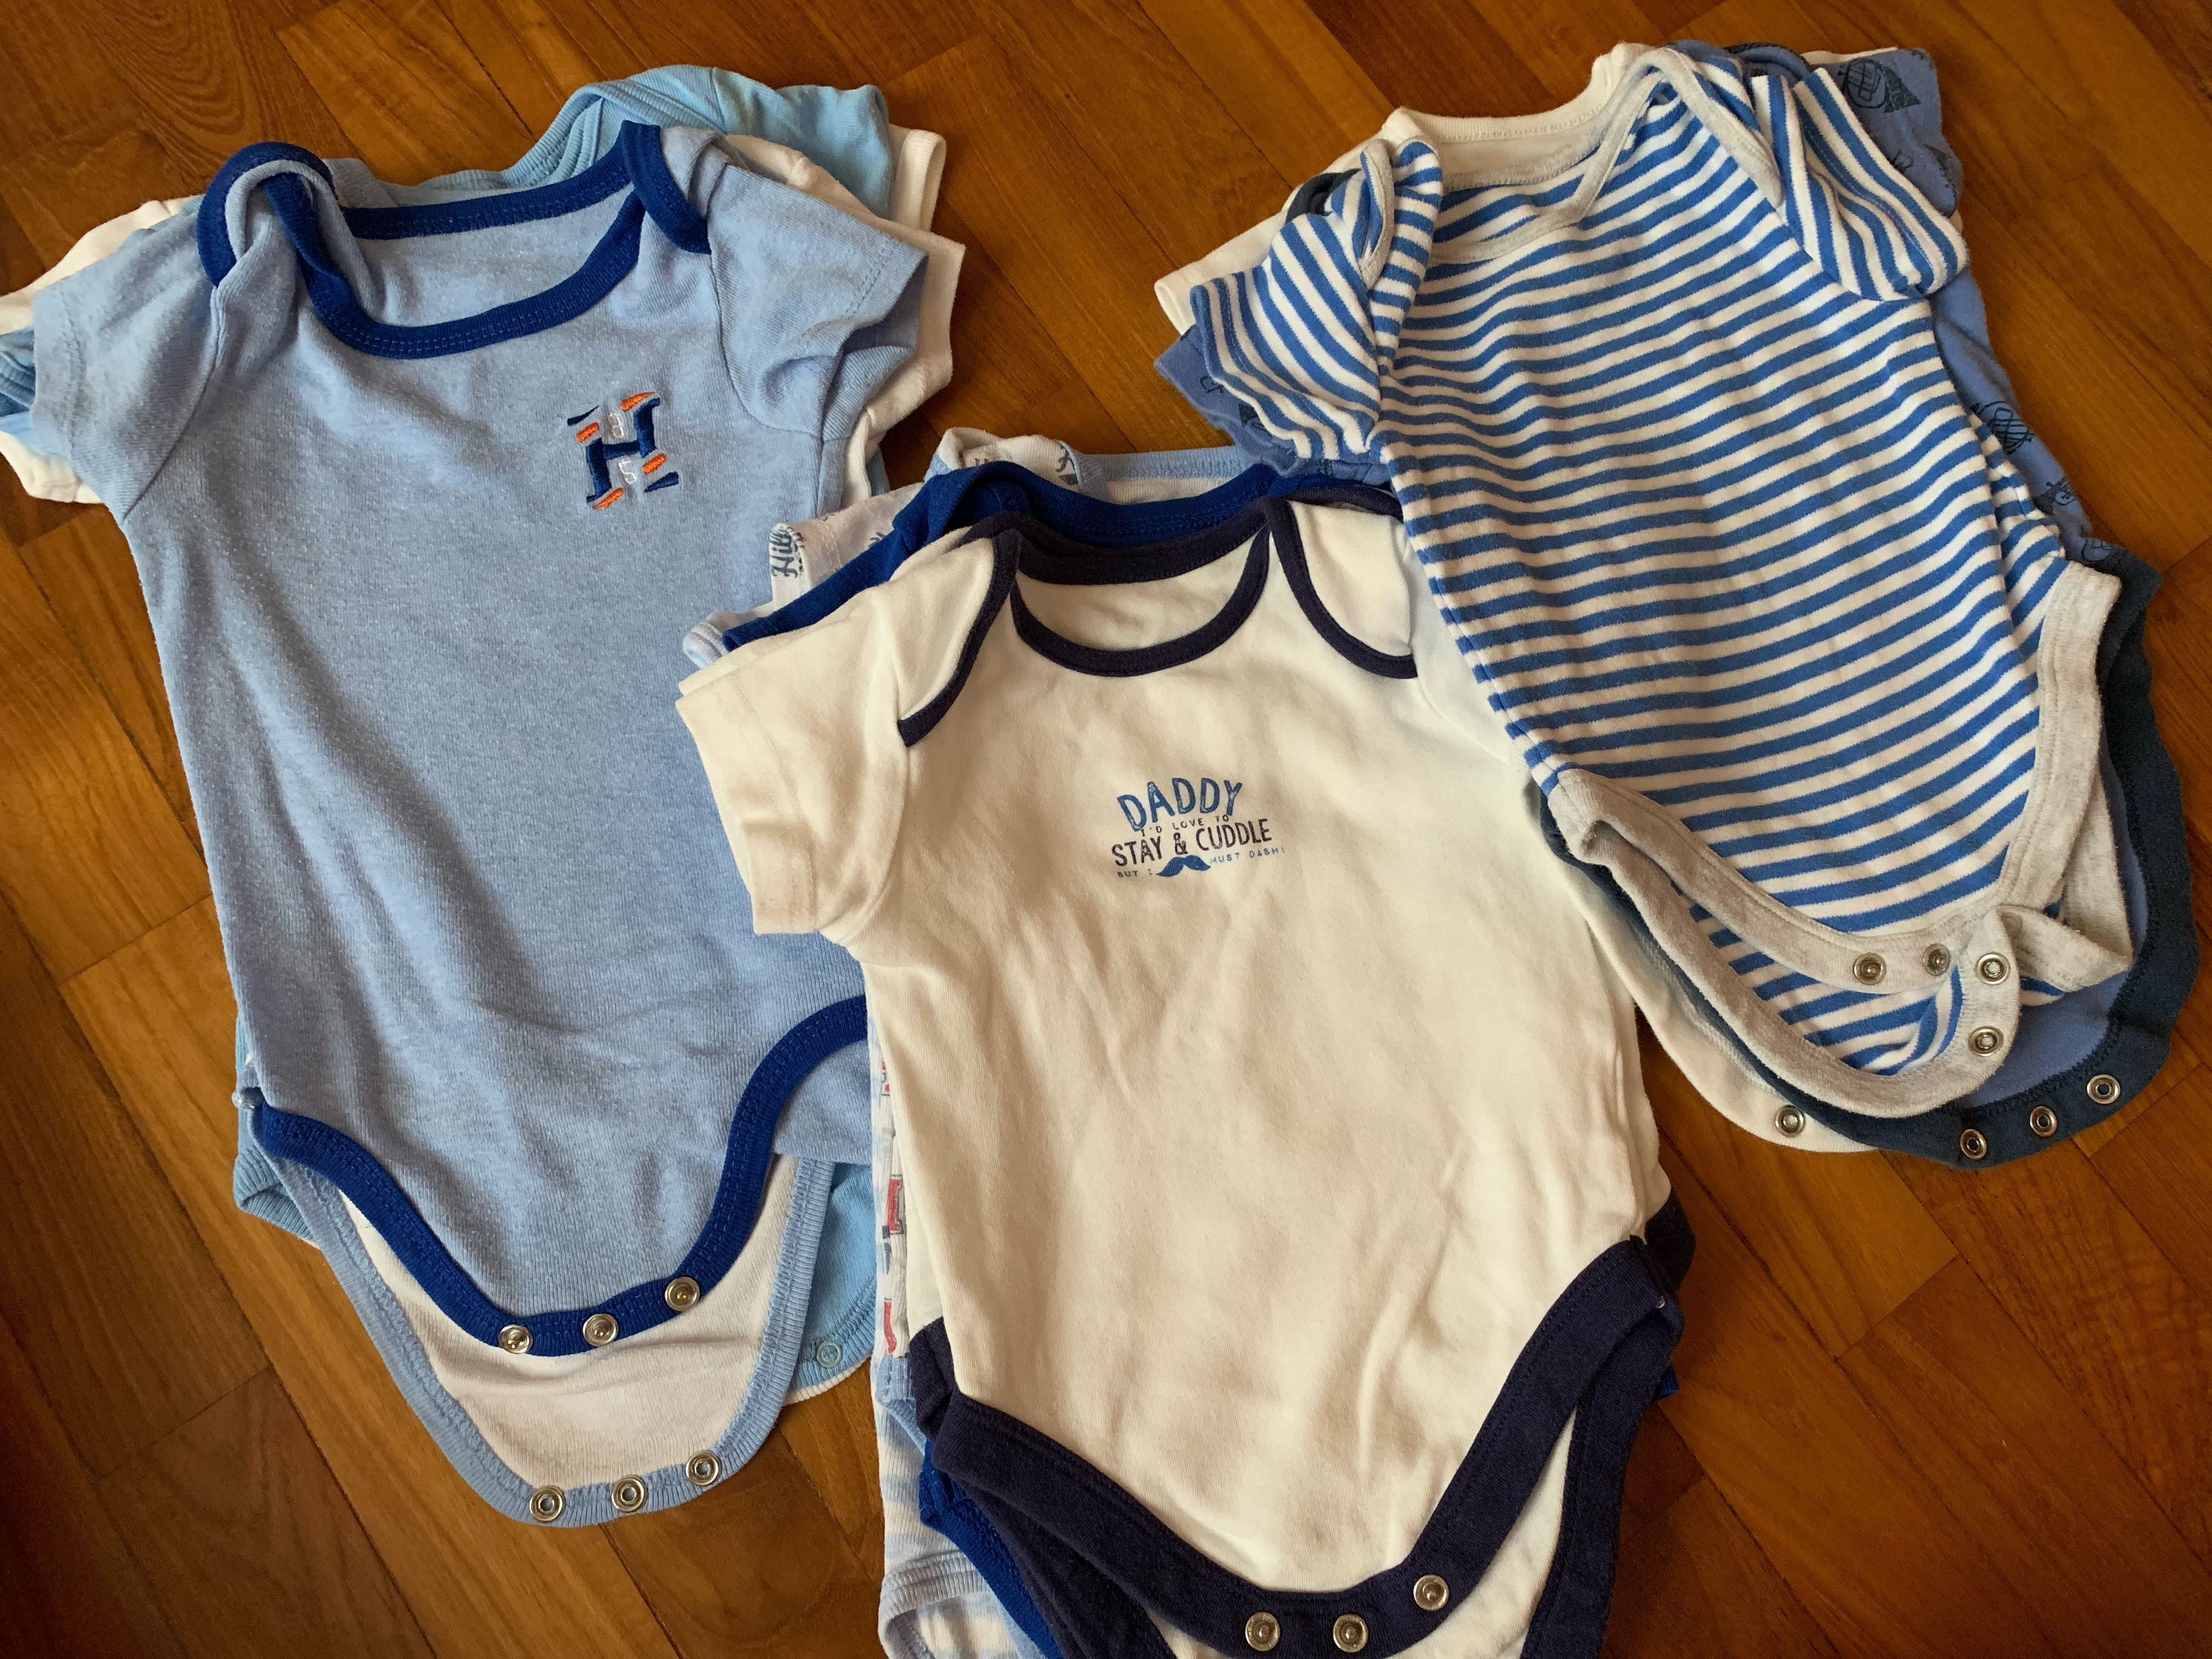 24e8ad3d9 Baby Boy Clothes Bundle, Babies & Kids, Babies Apparel on Carousell